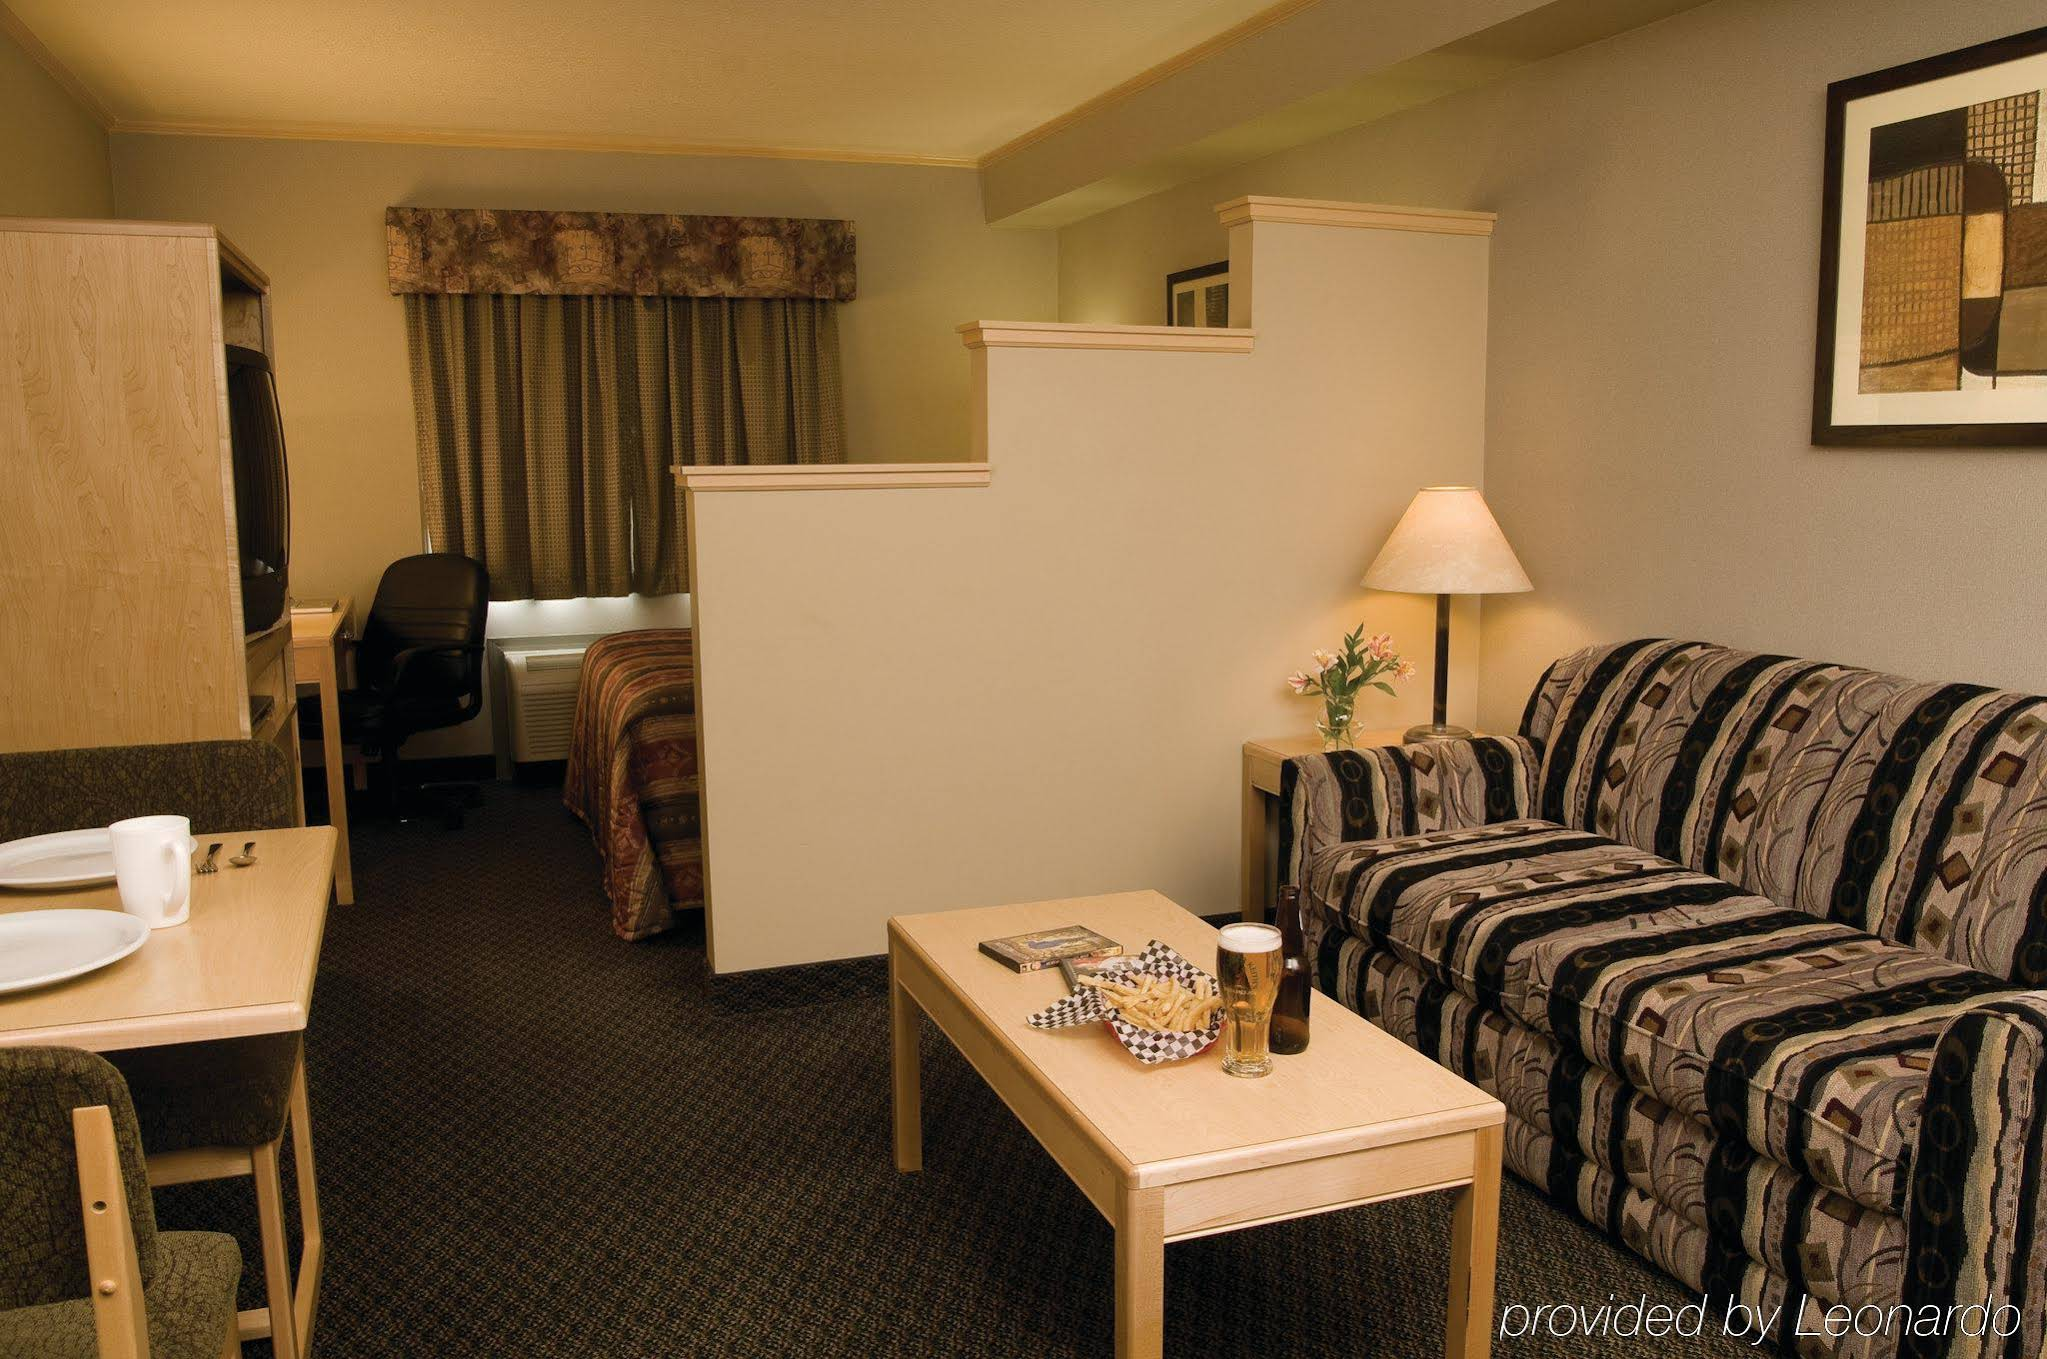 The Vantage Inn and Suites